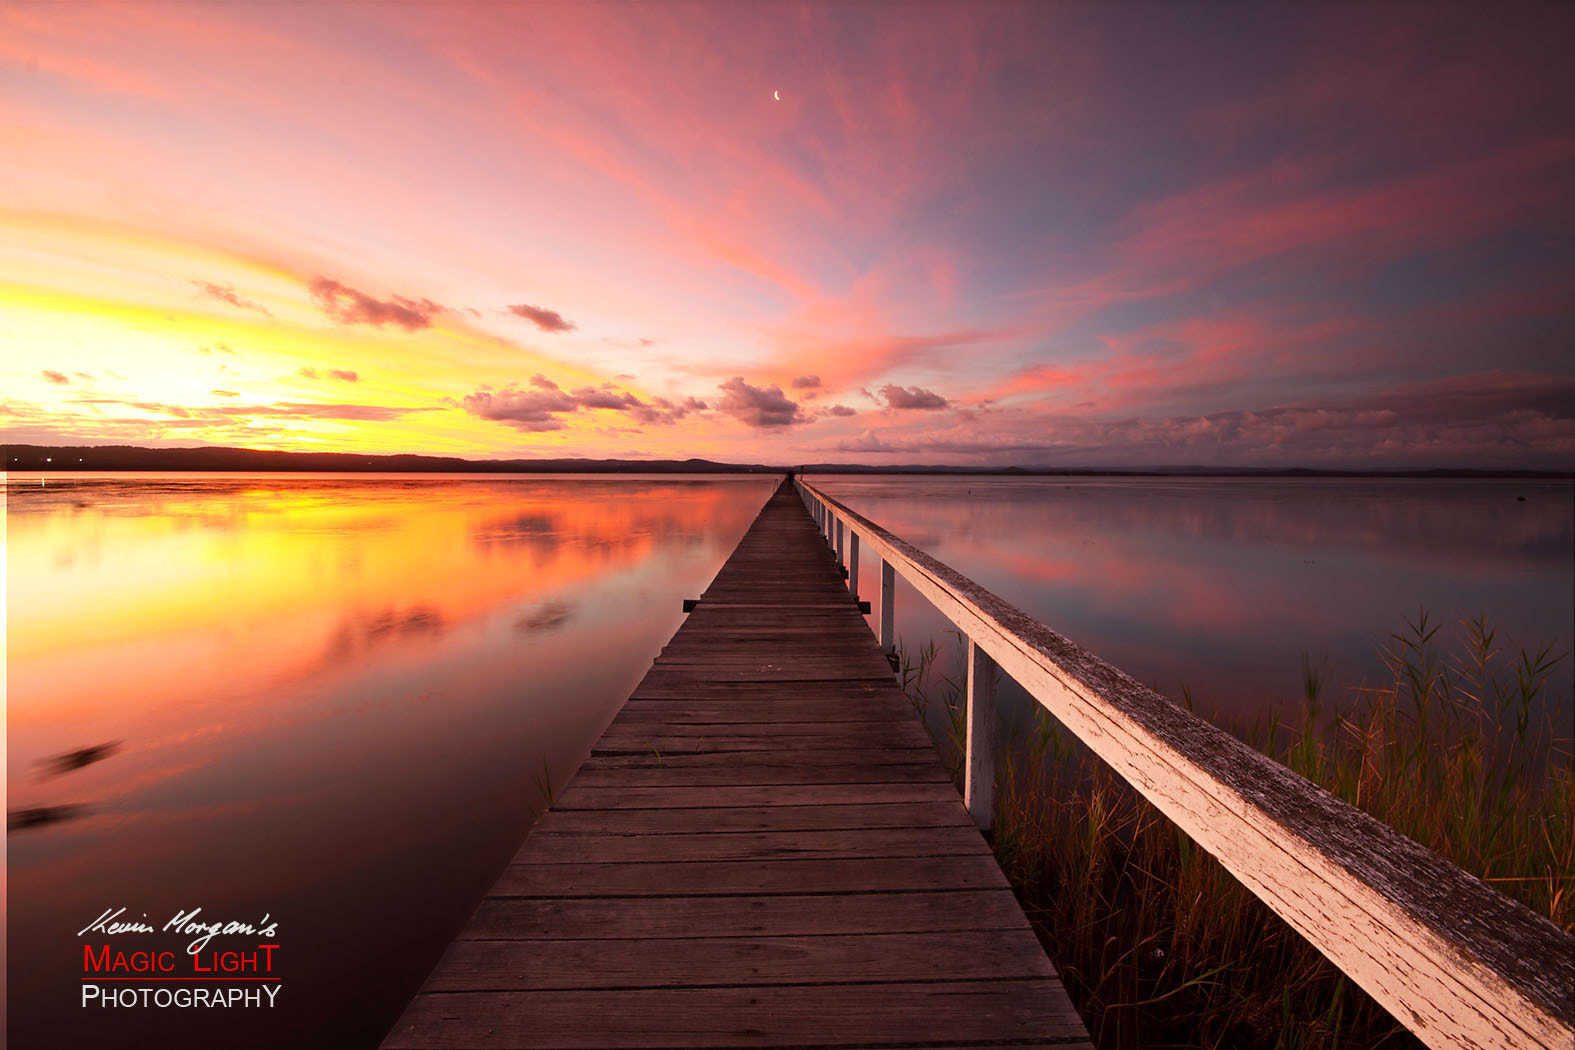 Photograph Long Jetty Sunset 3 by Kevin Morgan on 500px